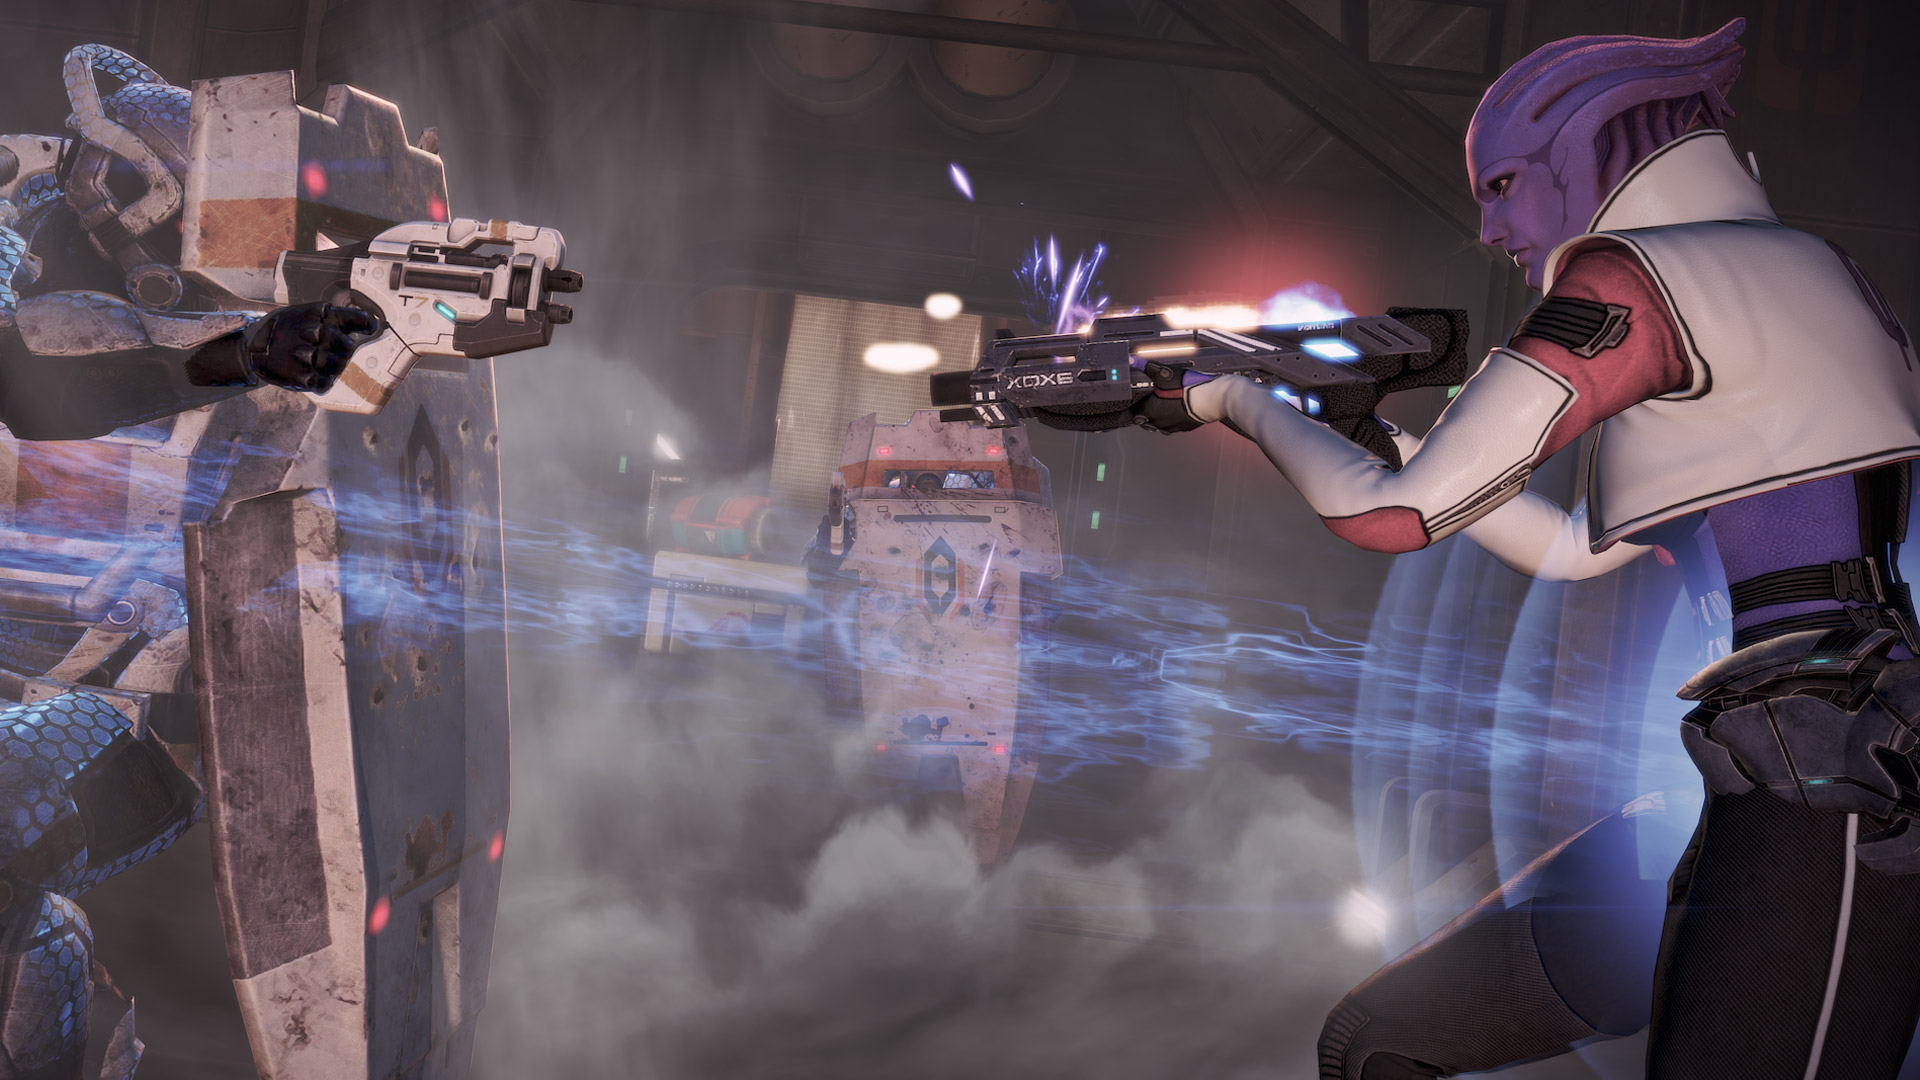 Free Mass Effect 3 Wallpaper in 1920x1080